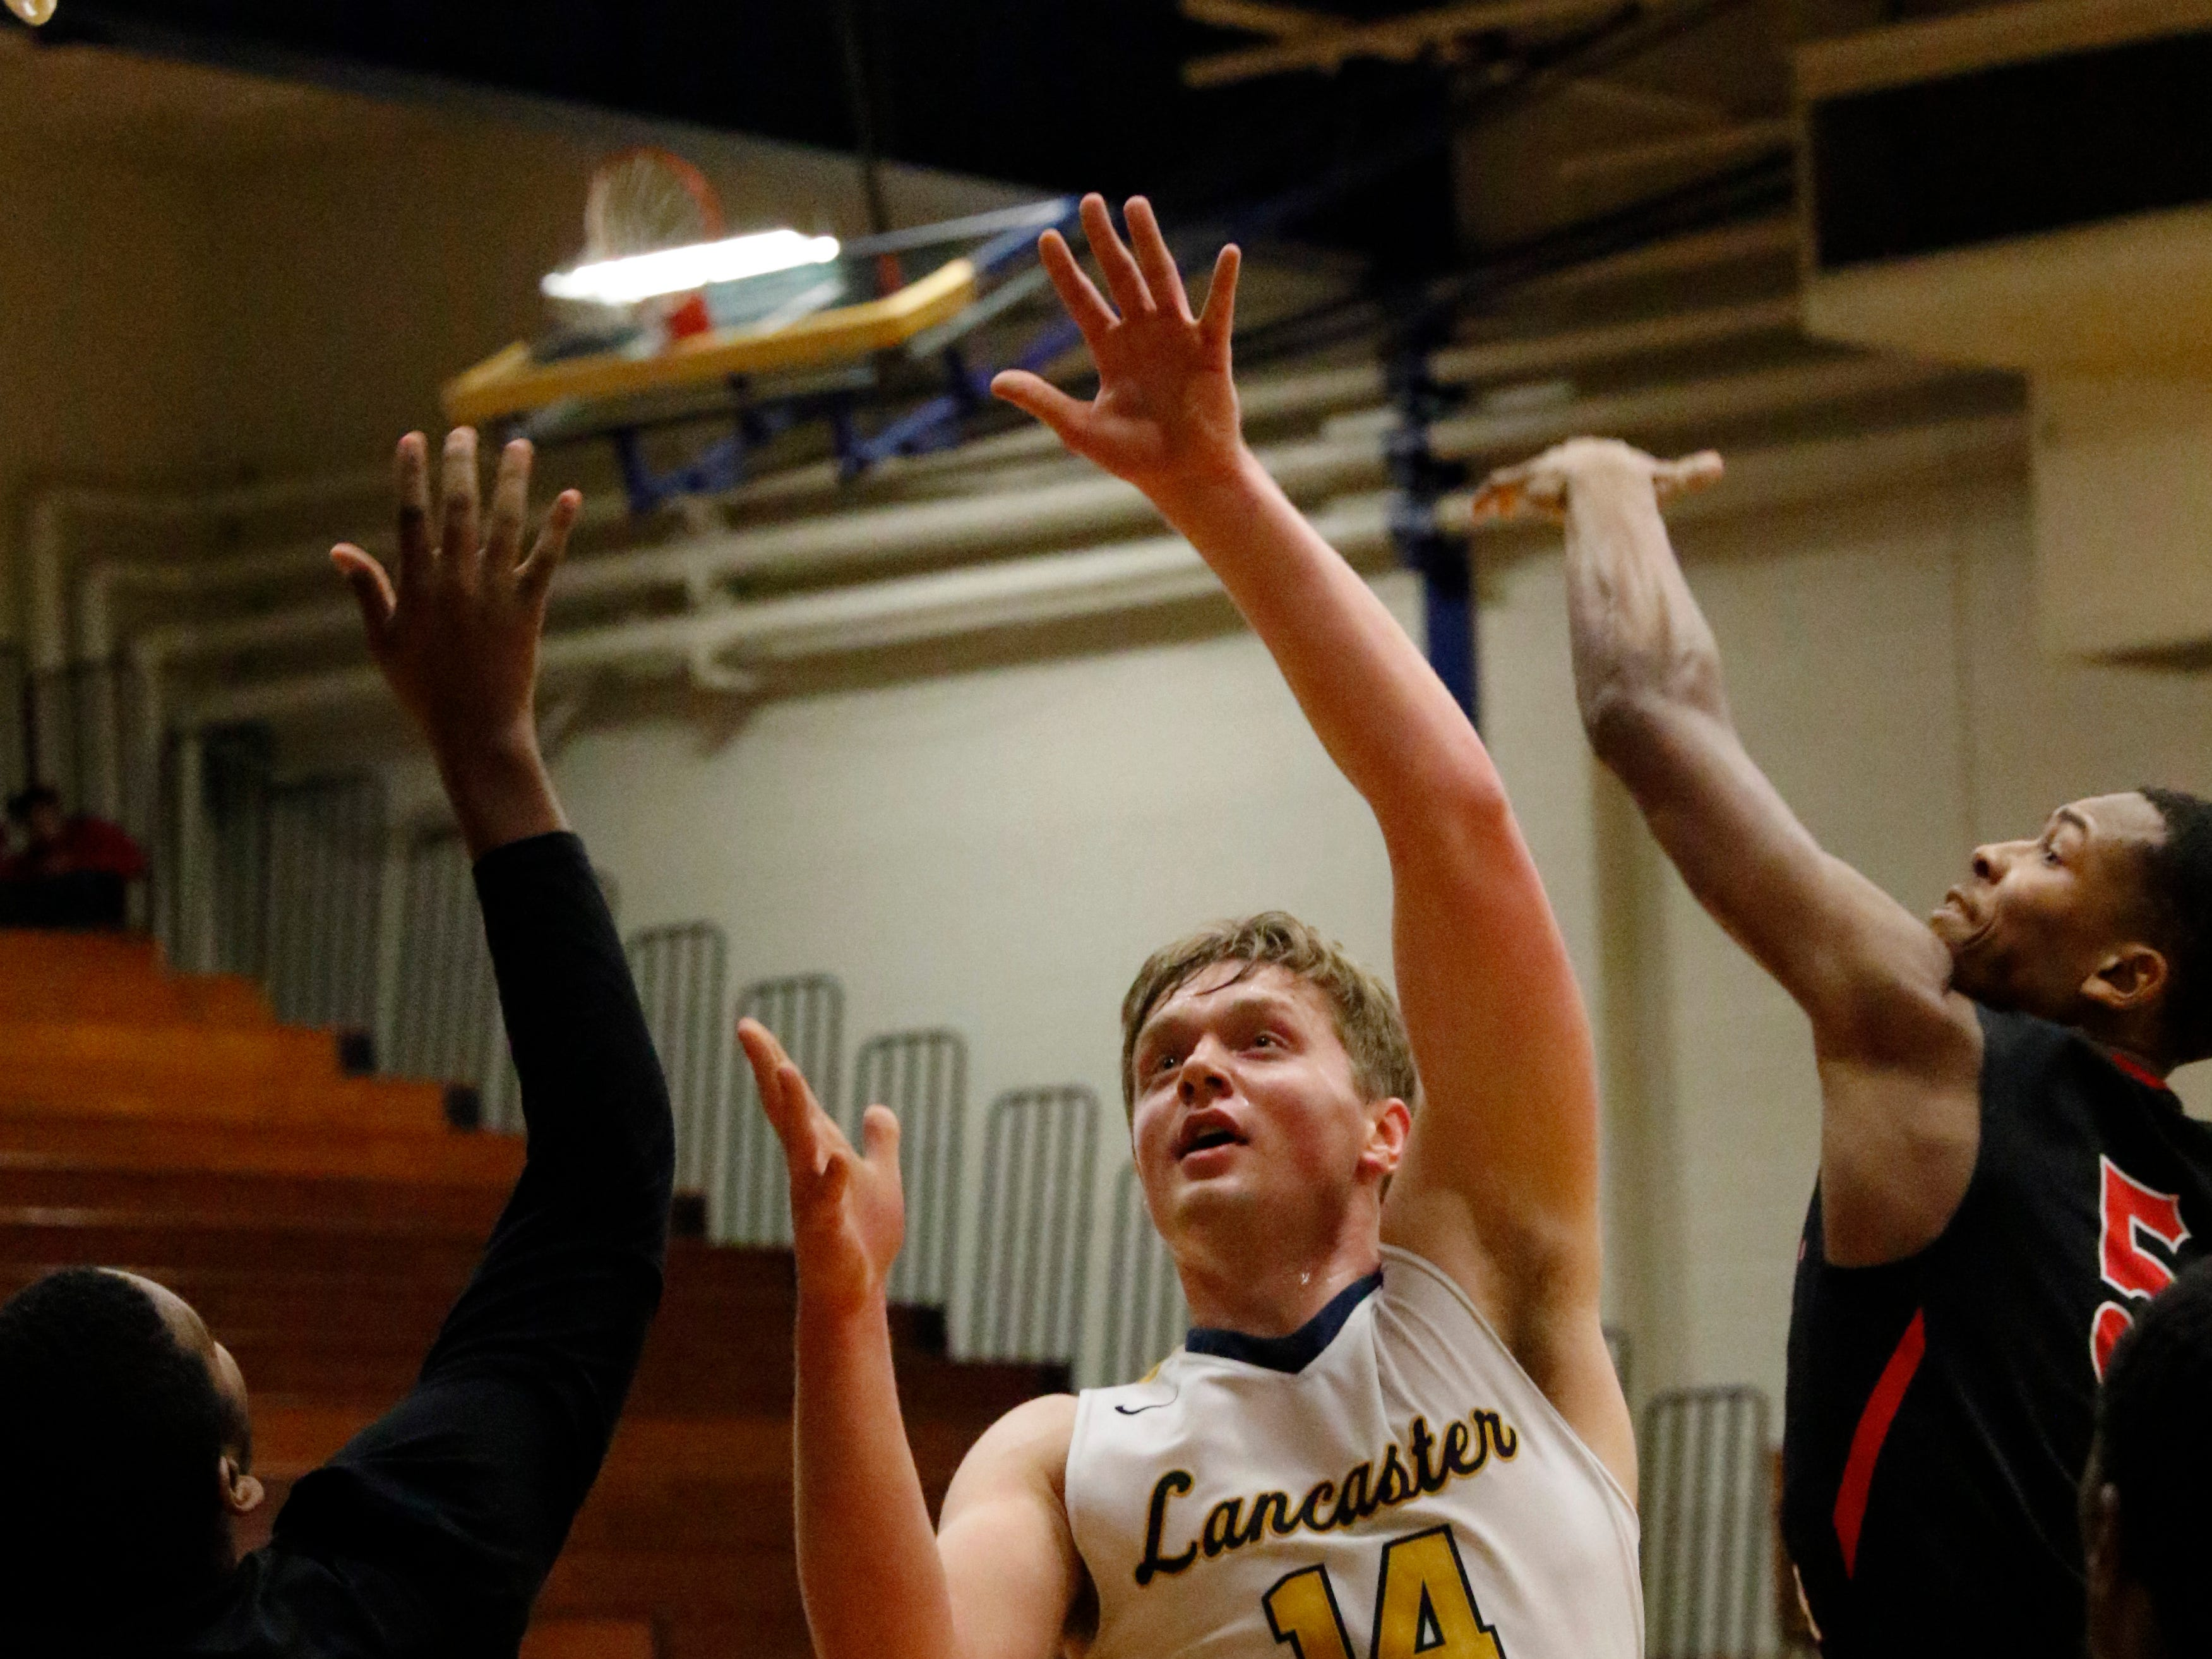 Lancaster's Owen Snyder jumps for a rebound during Tuesday night's game, Feb. 5, 2019, against Groveport Madison at Lancaster High School in Lancaster. The Golden Gales lost the game 47-40.